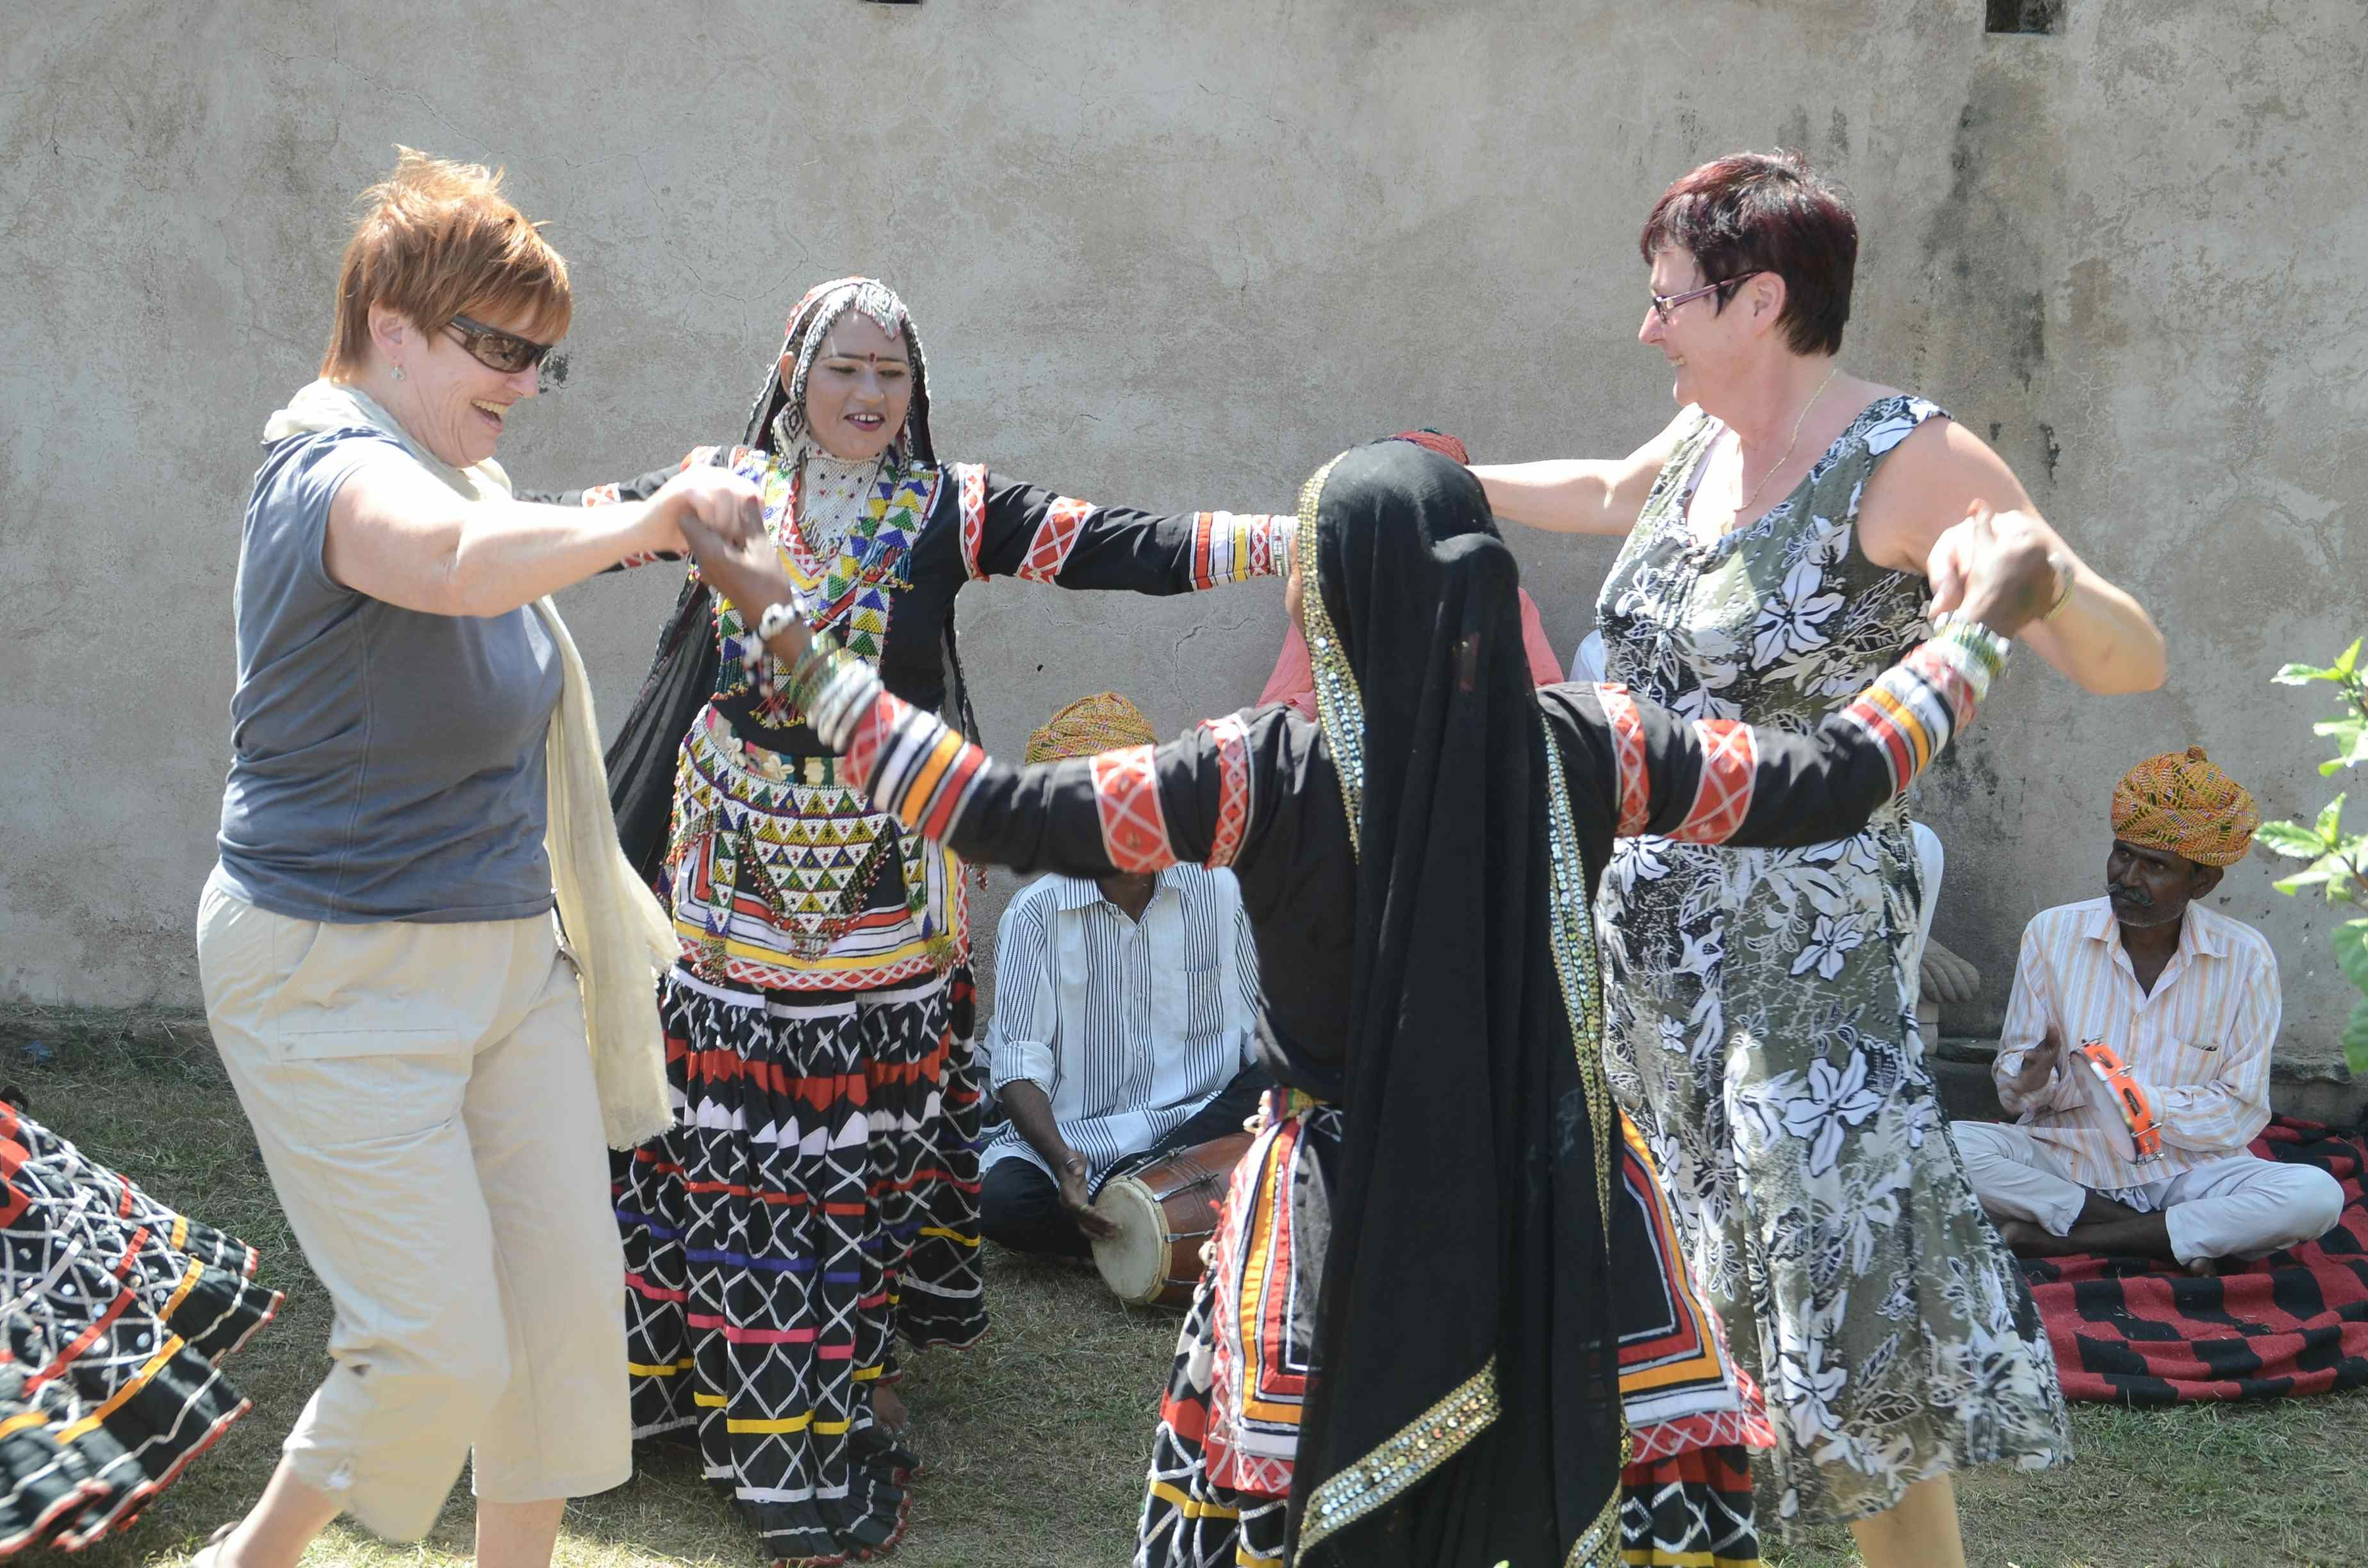 Dancers performing Kachchi Ghodhi dance, and the foreign guests joined in.